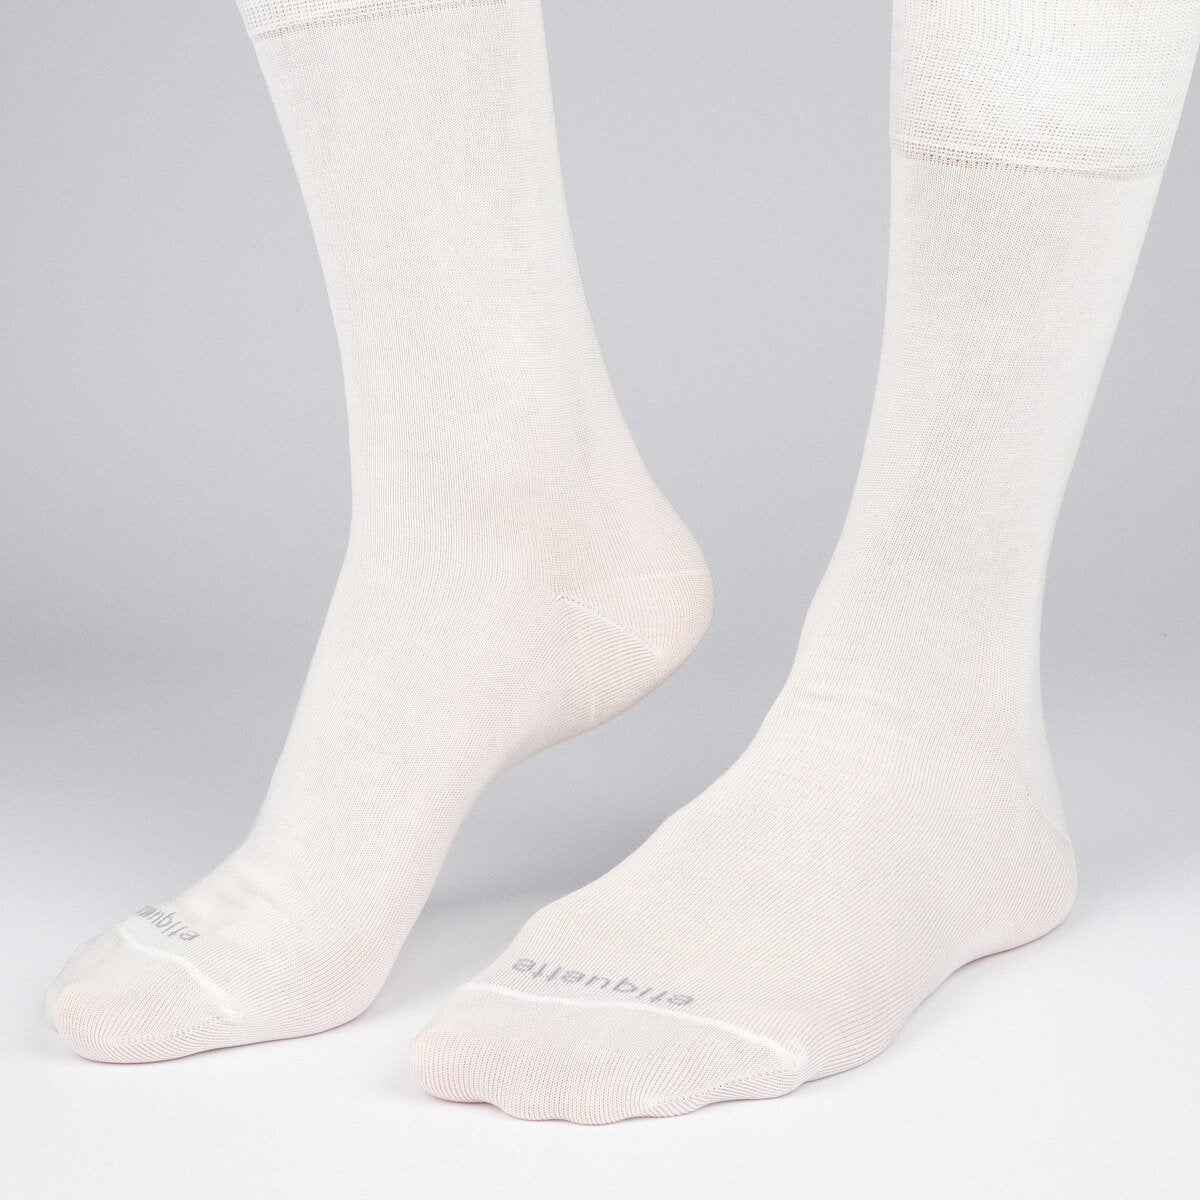 Basic Luxuries - Ecru - Mens Socks | Etiquette Clothiers Global Official